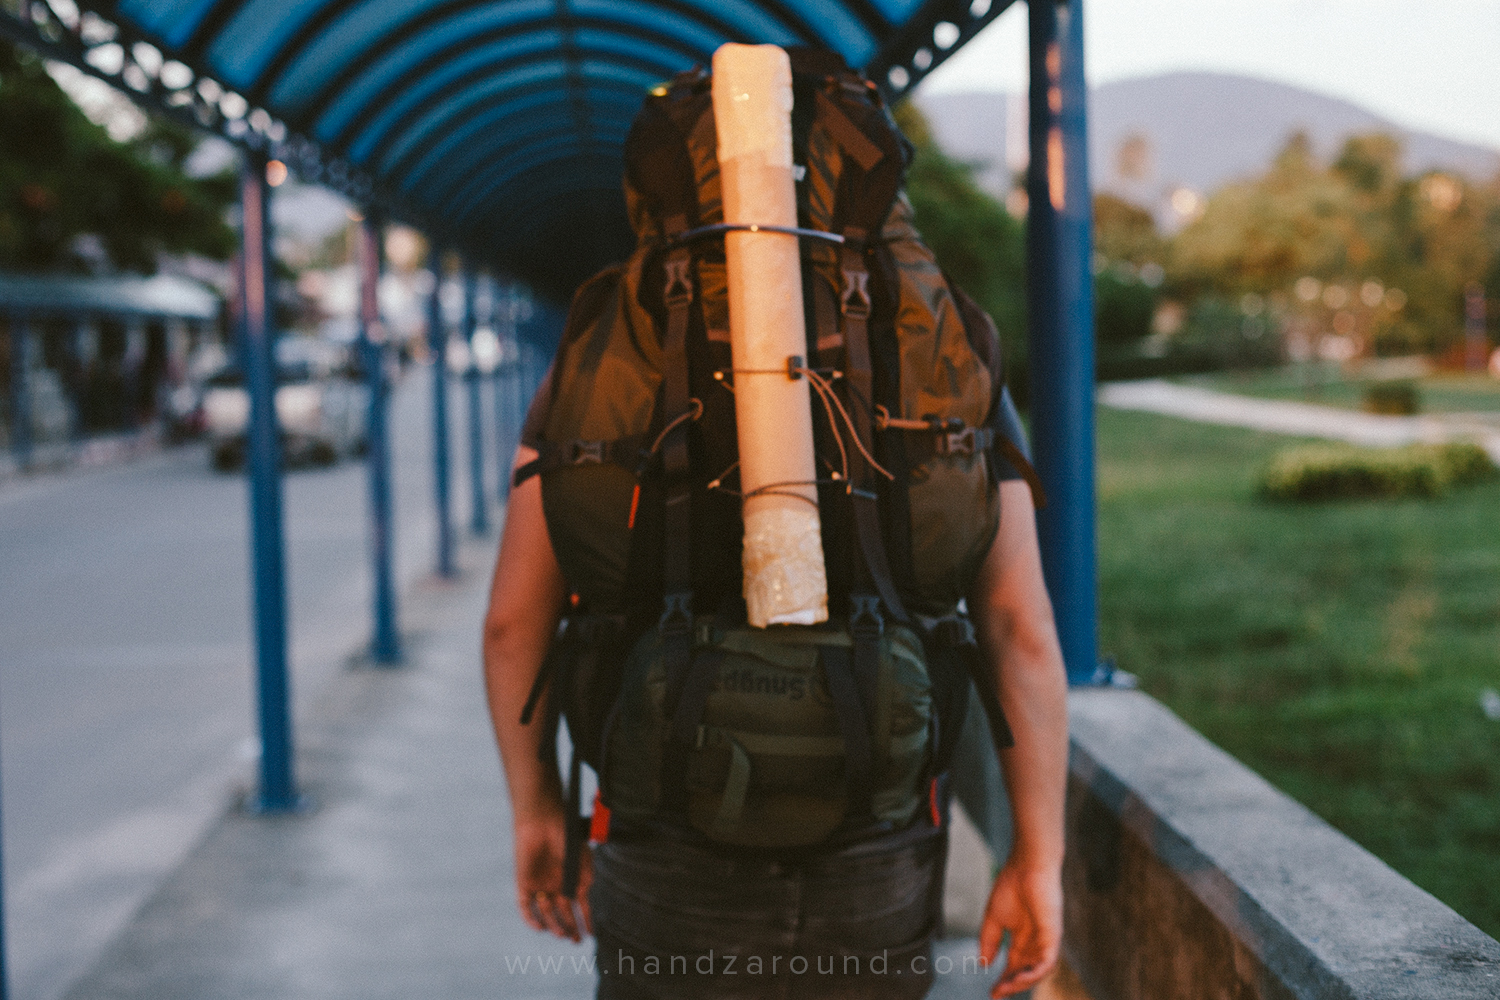 We spent lots of time looking for a perfect insurance for our backpacking trip and did a lot of research...so now we would like to save you time!